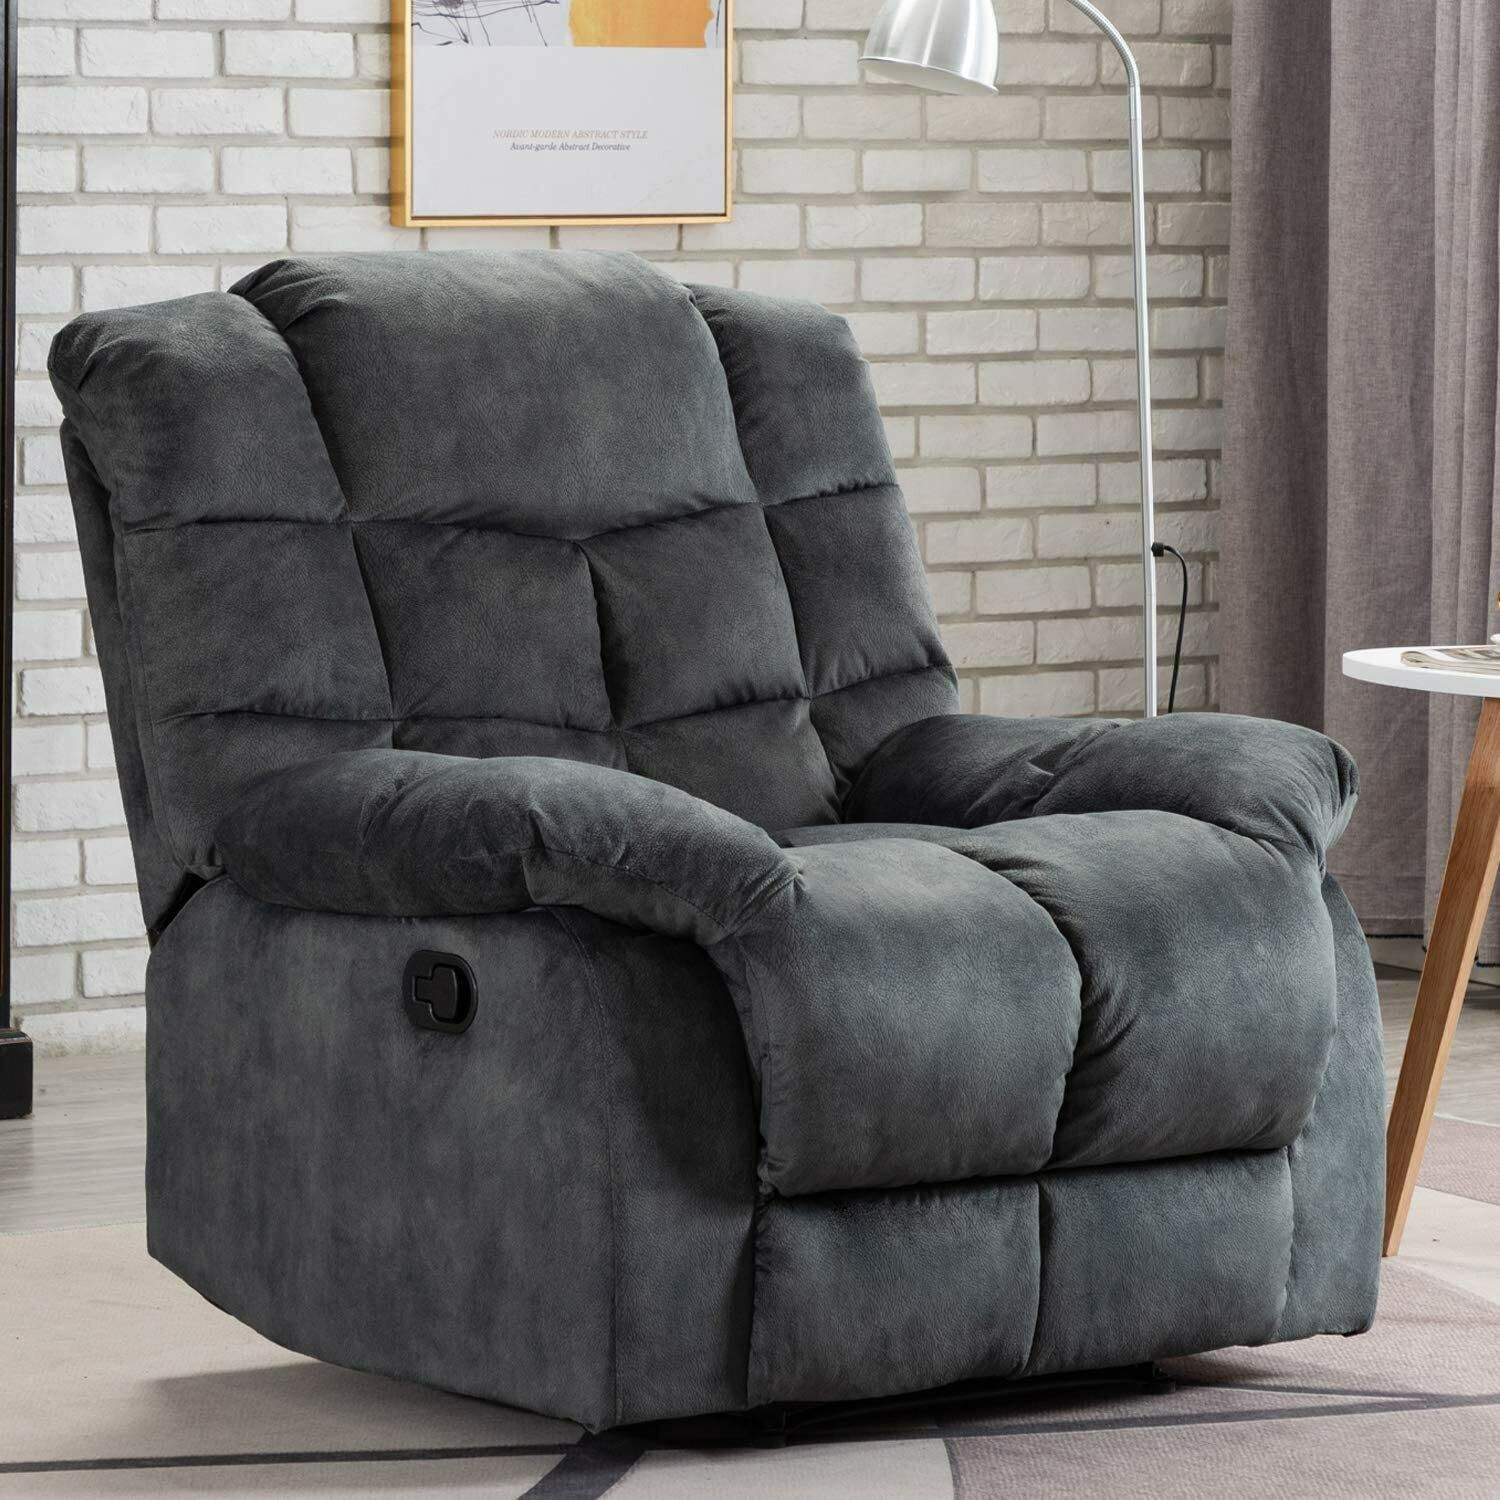 overstuffed manual recliner chair single couch sofa